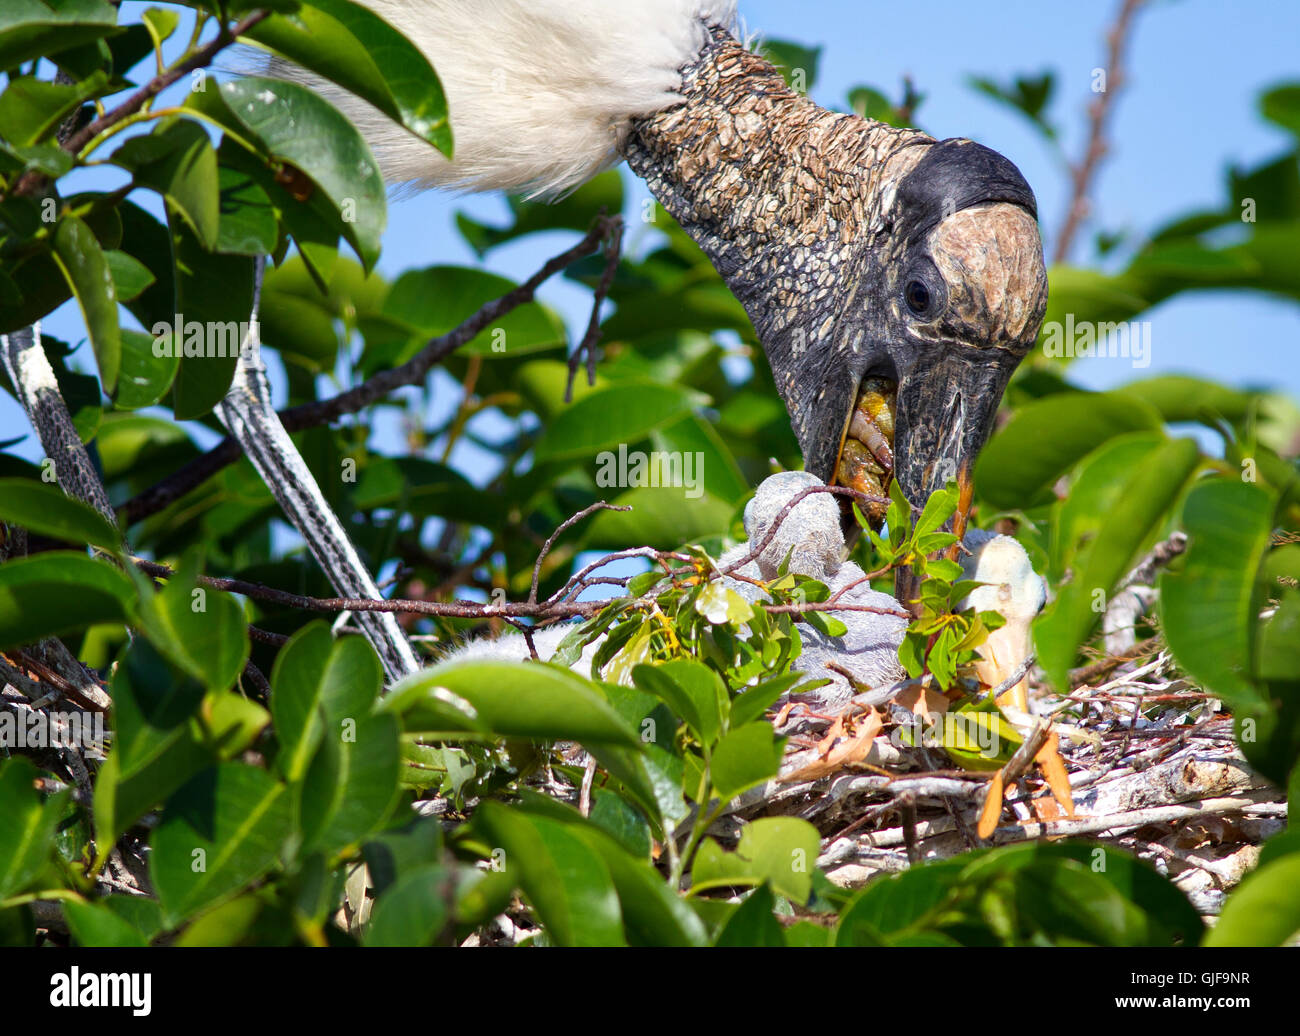 Parent wood stork regurgitates partially digested fish into the mouths of its nestlings. - Stock Image